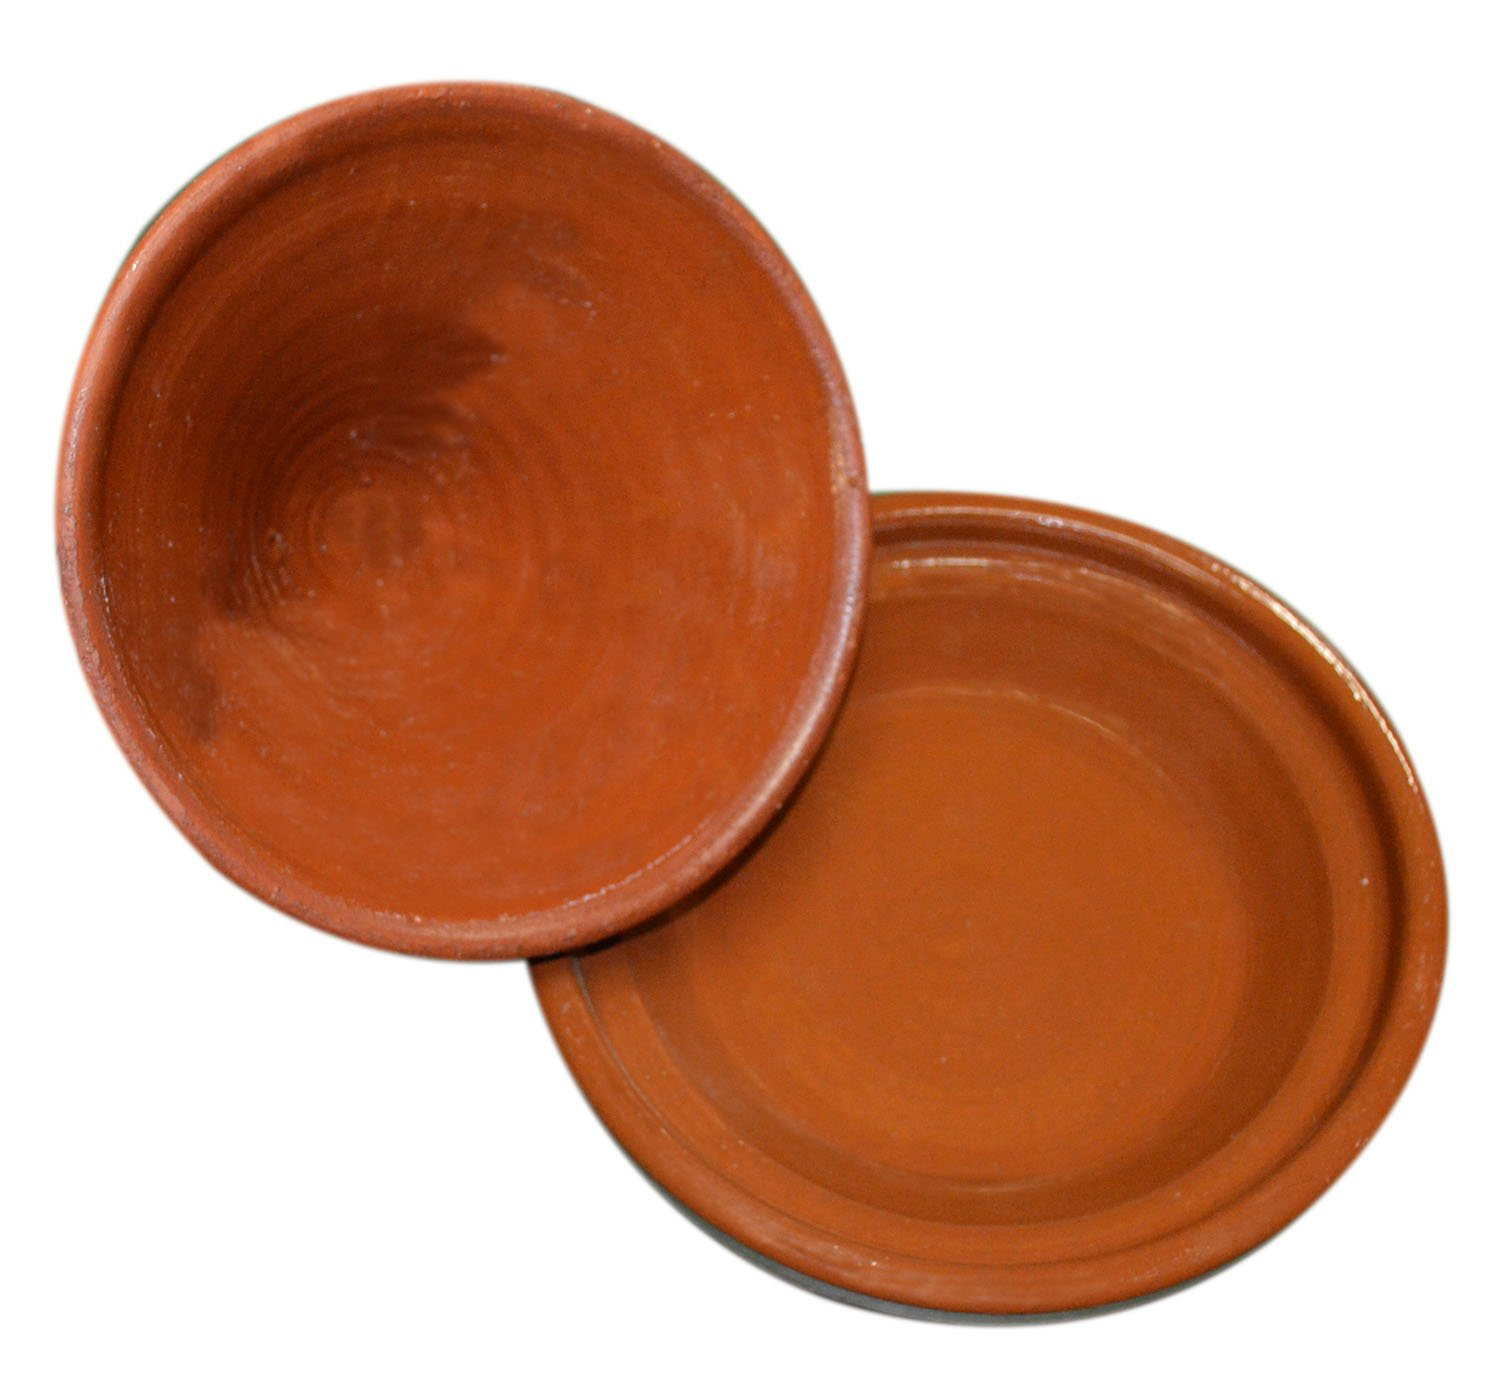 Moroccan Lead Free Cooking Tagine 100% handmade Clay Cookware by Cooking Tagines (Image #2)